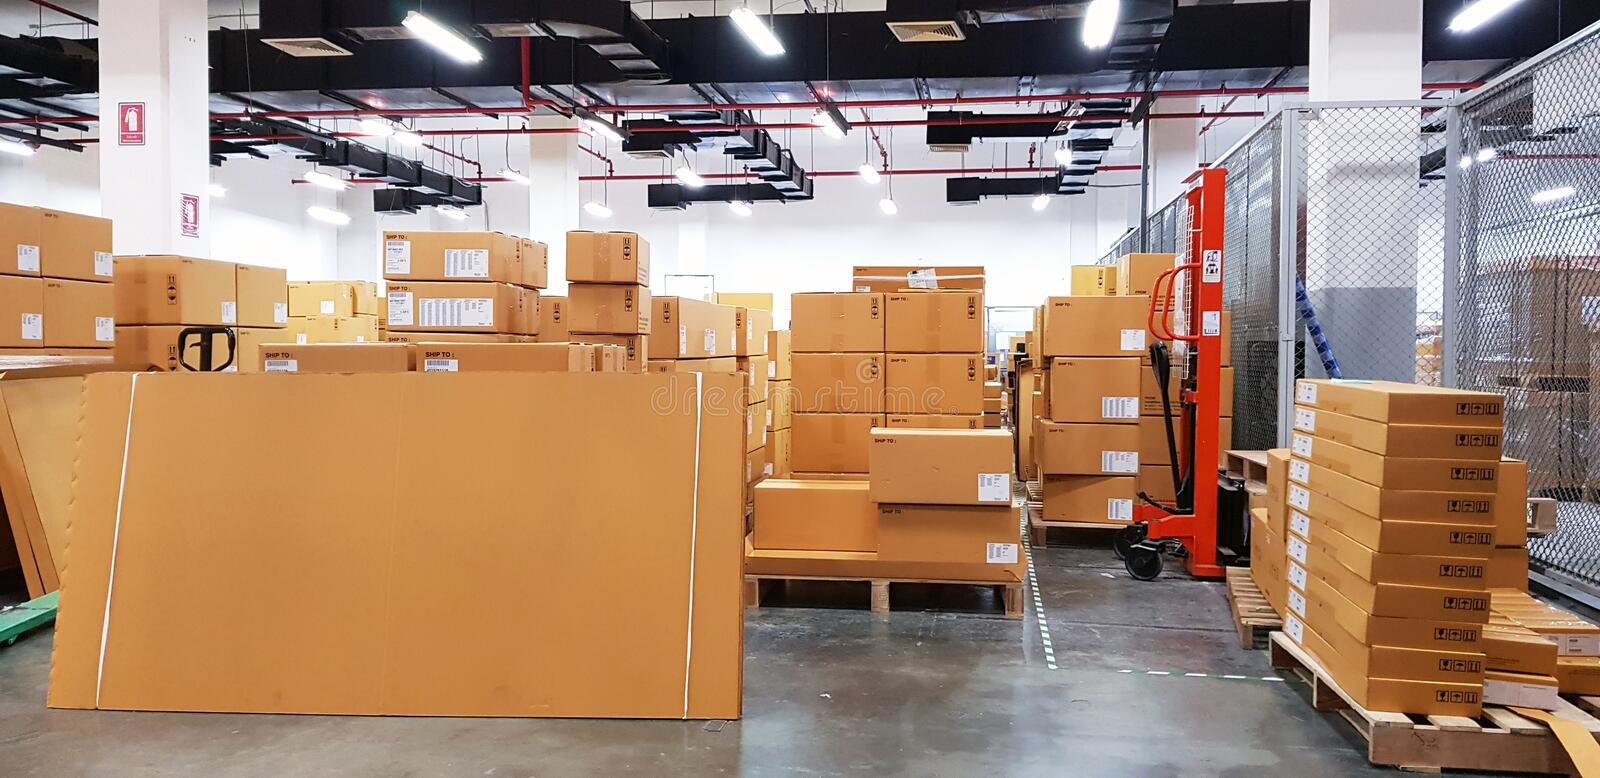 Large warehouse logistic or distribution center. Interior of warehouse with rows of shelves with big boxes.  royalty free stock photo